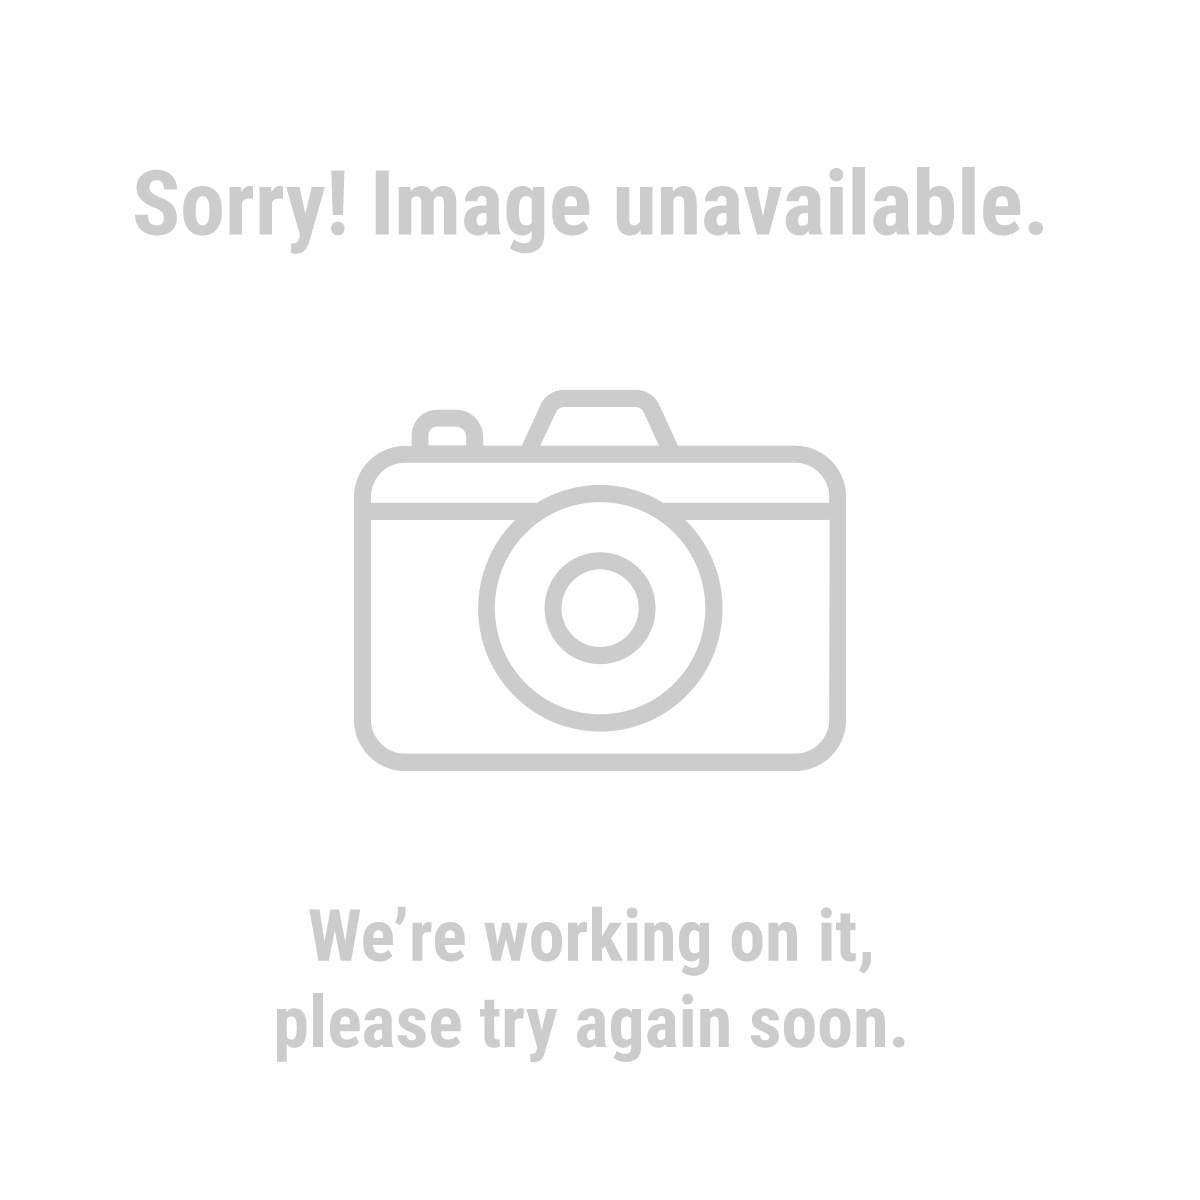 Solar LED Fence Light 4 Piece